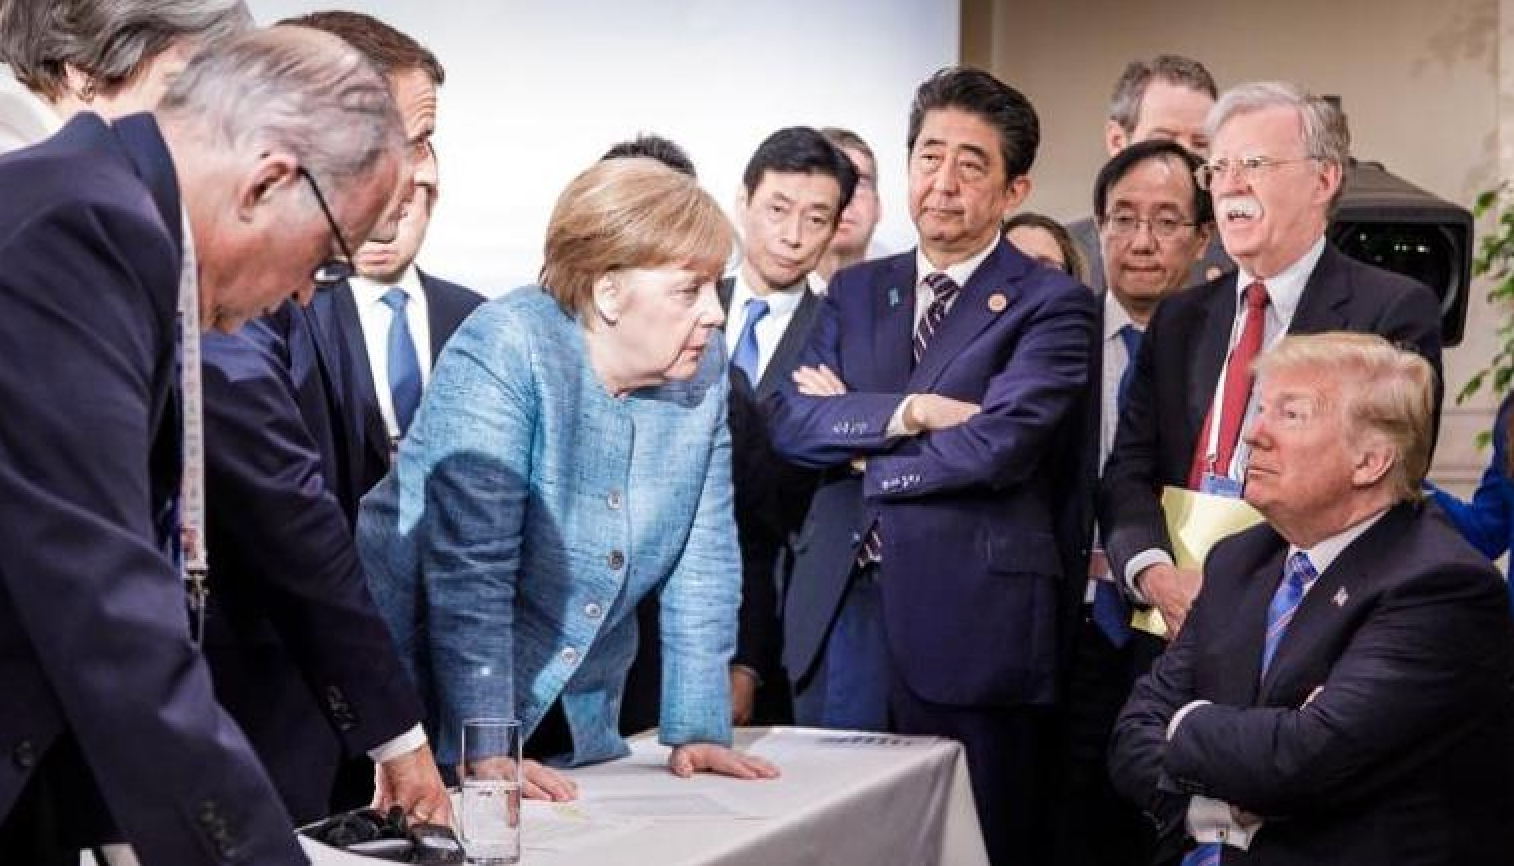 Scott Rouse - Body Language Expert - Speaker - Trump - G7 - Arms Crossed - Arms Crossed Means More Than One Thing